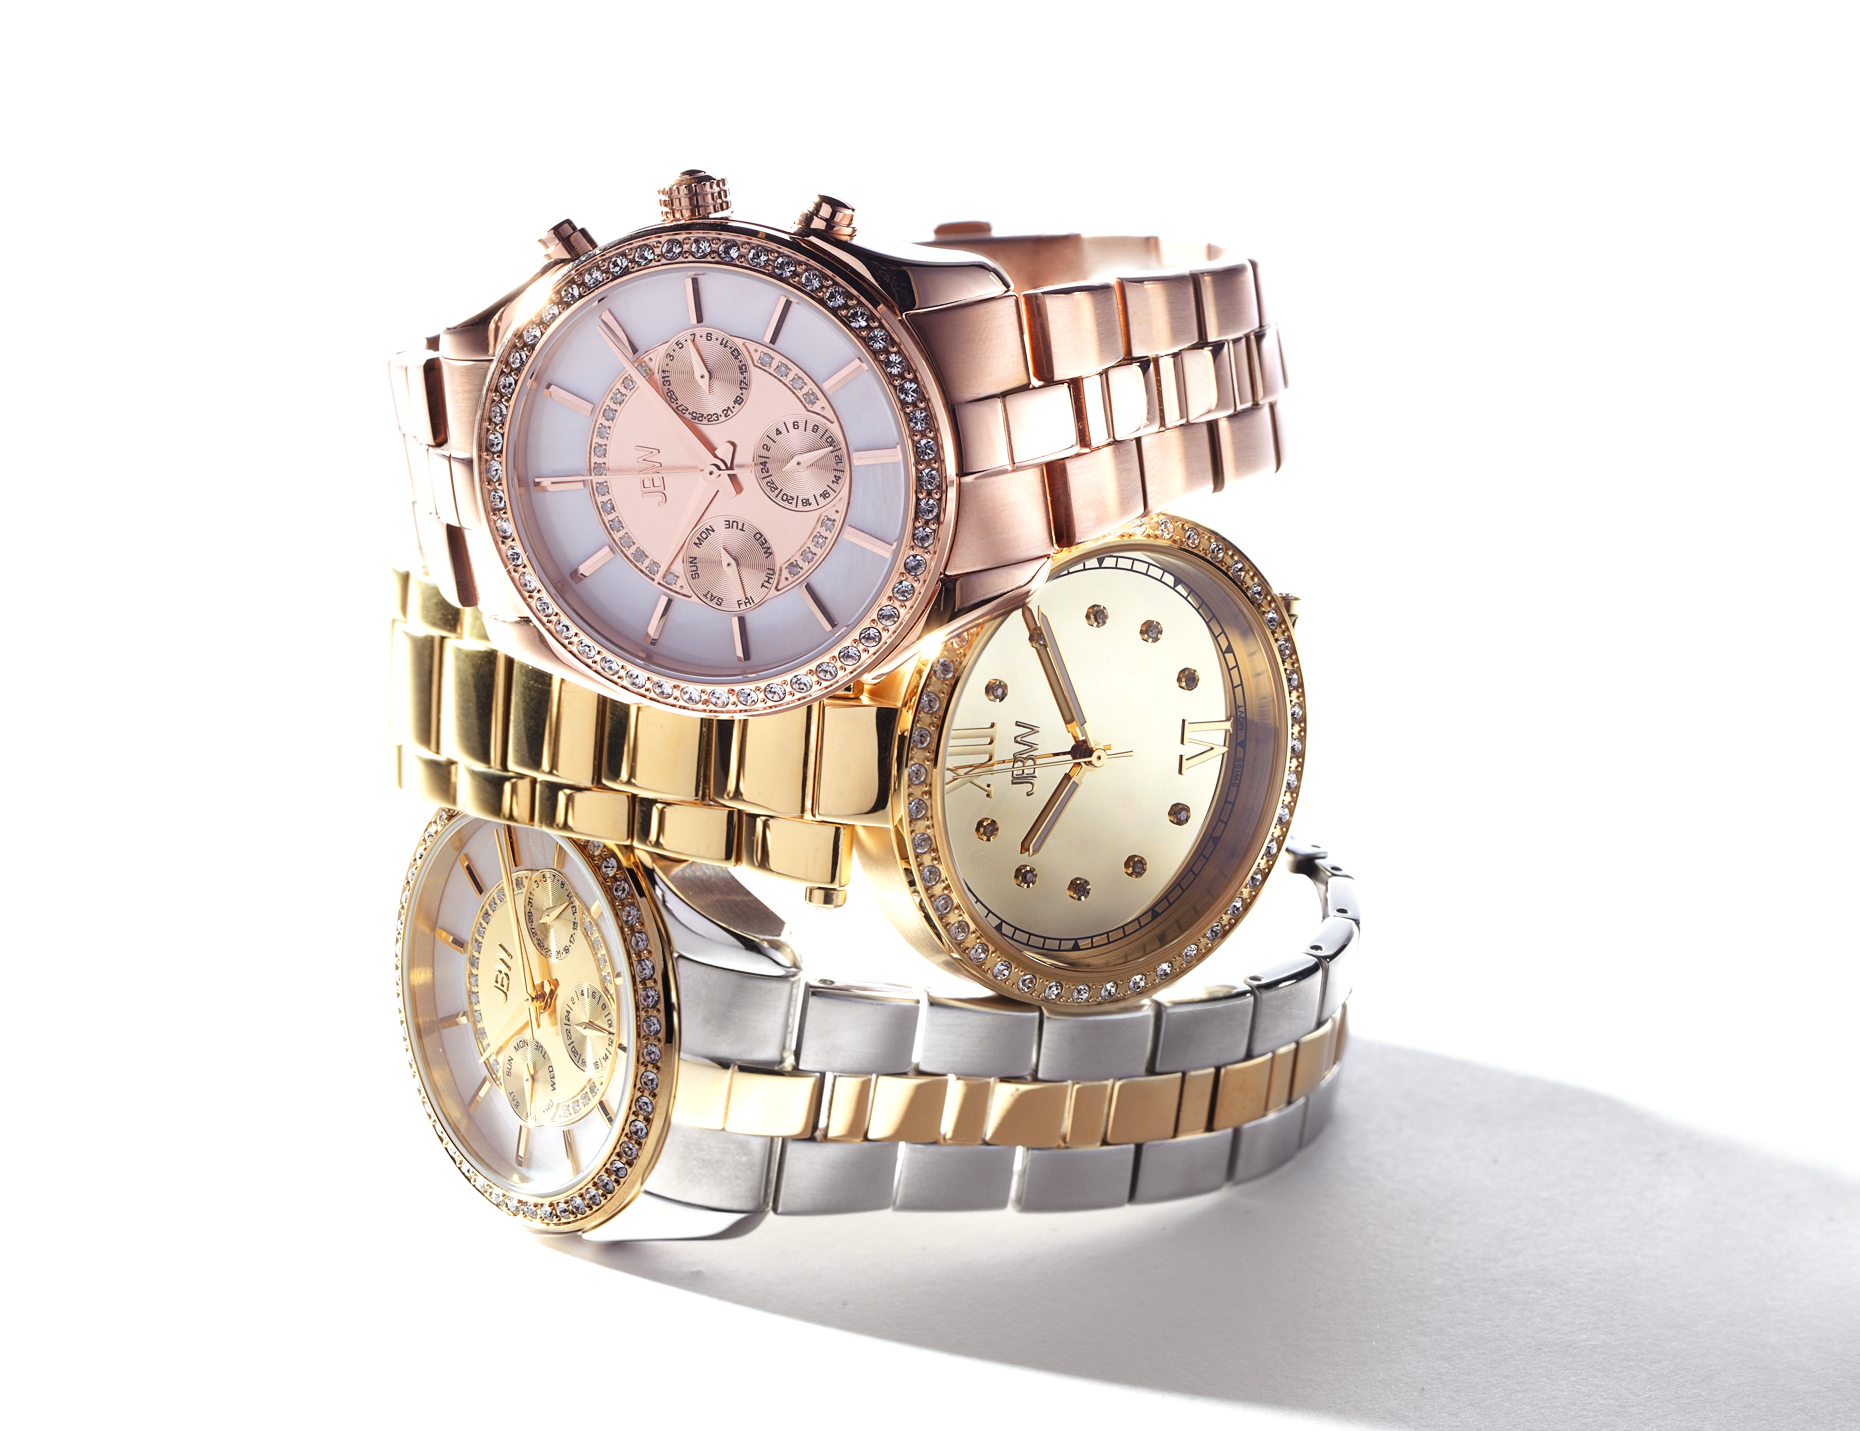 female belbi watches item women luxury s roman number retro dial brand design ladies in from jewellery wristwatches jewelry bing quartz rhinestone clock